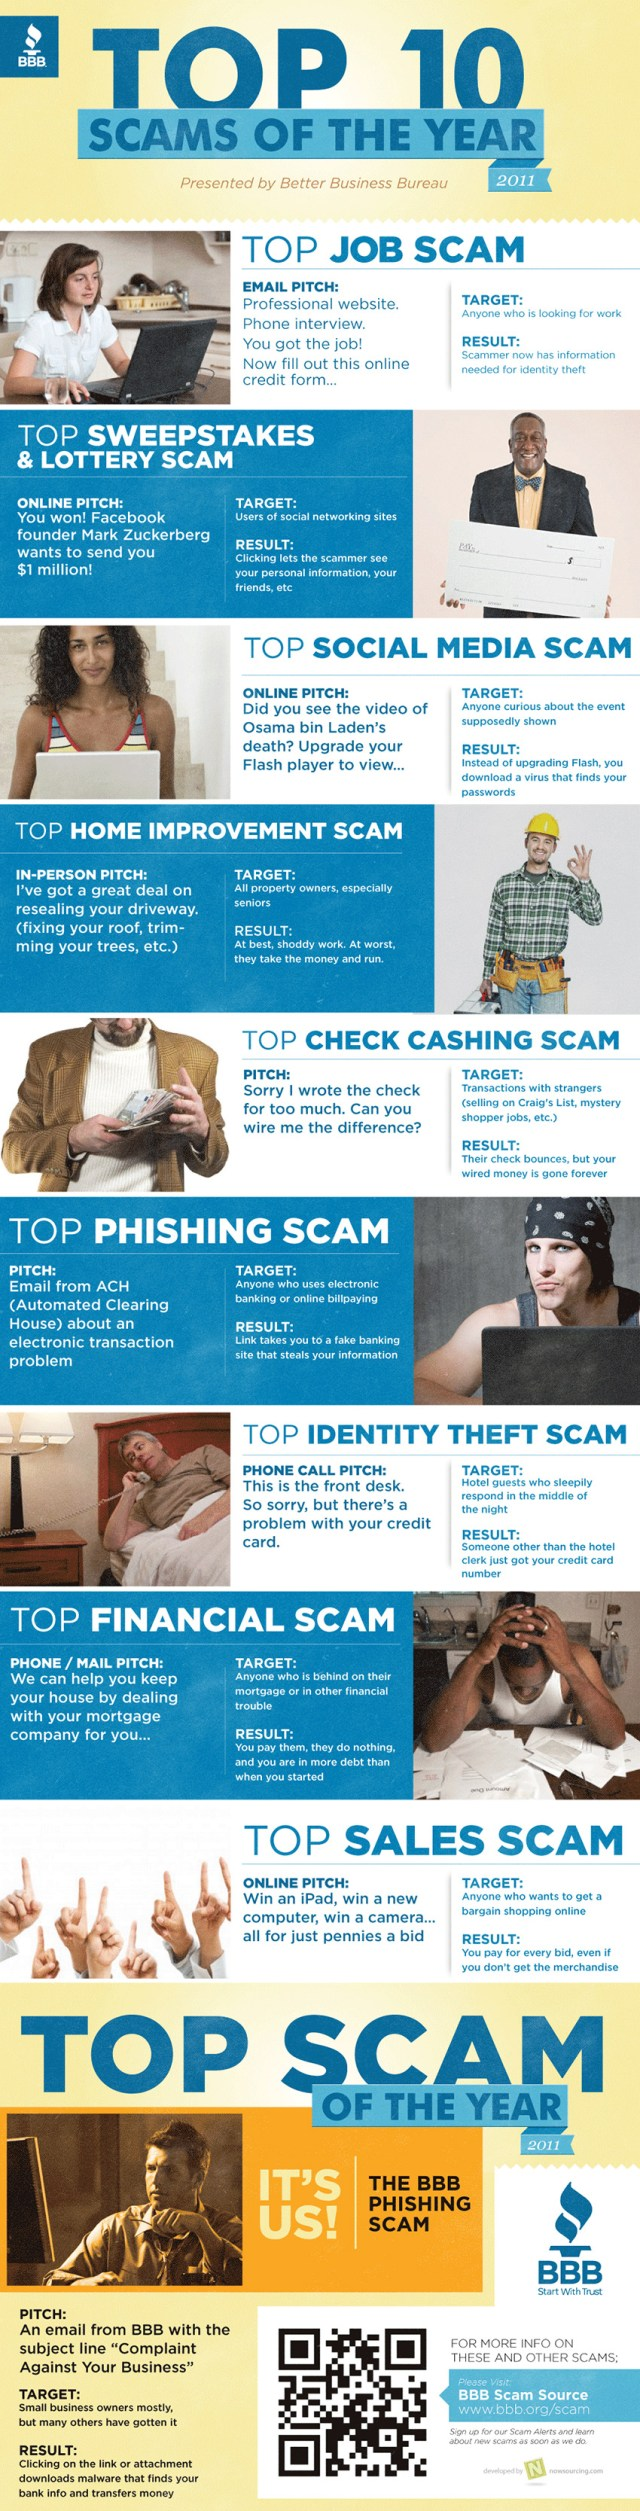 Top 10 Scams Of The Year